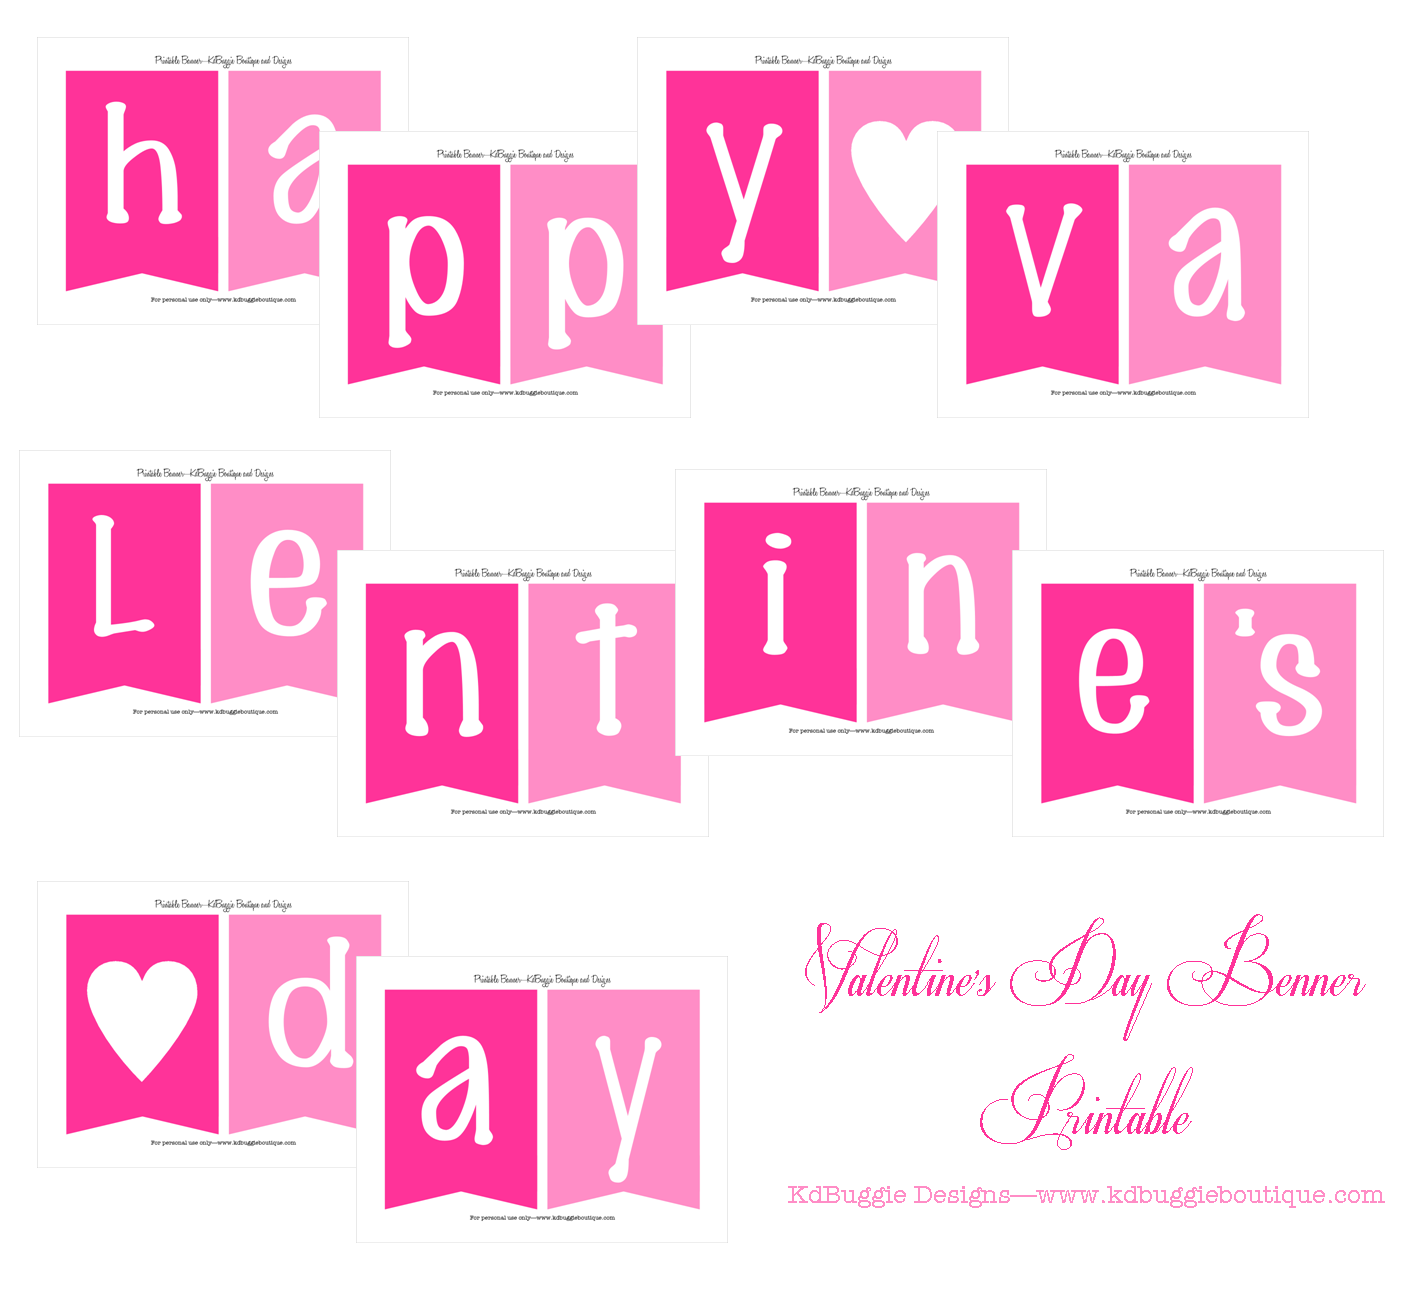 6 Images of Day Valentine's Banner Printable